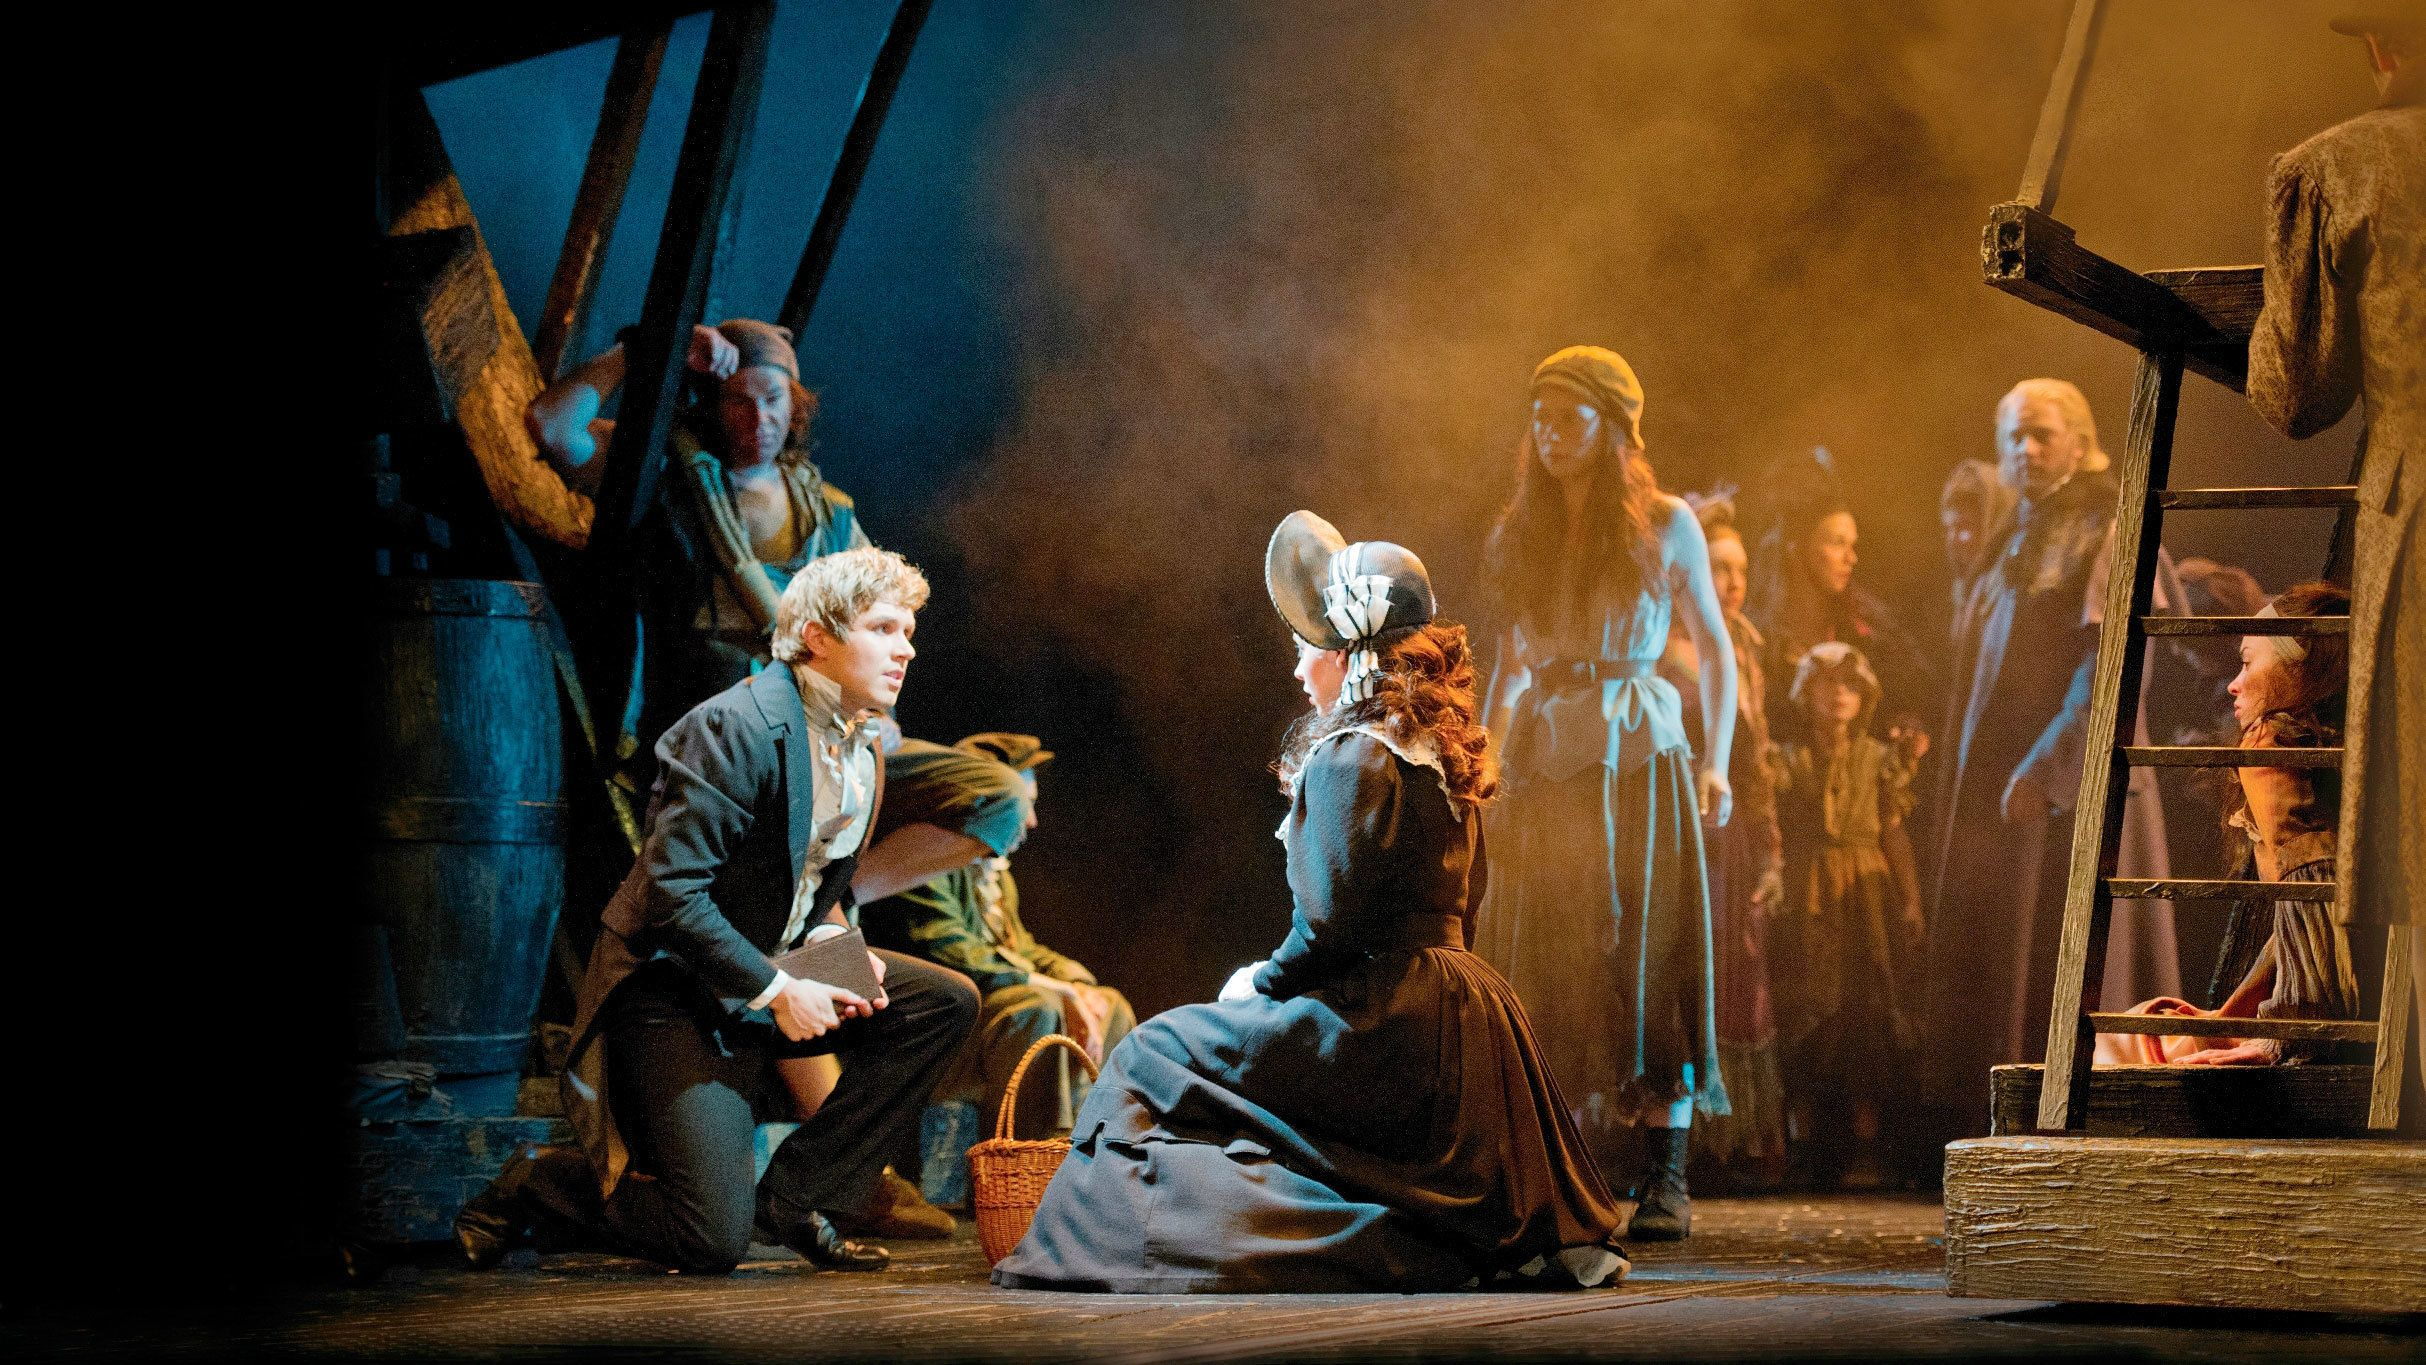 man kneels before woman in theatre stage play of Les Misérables in London